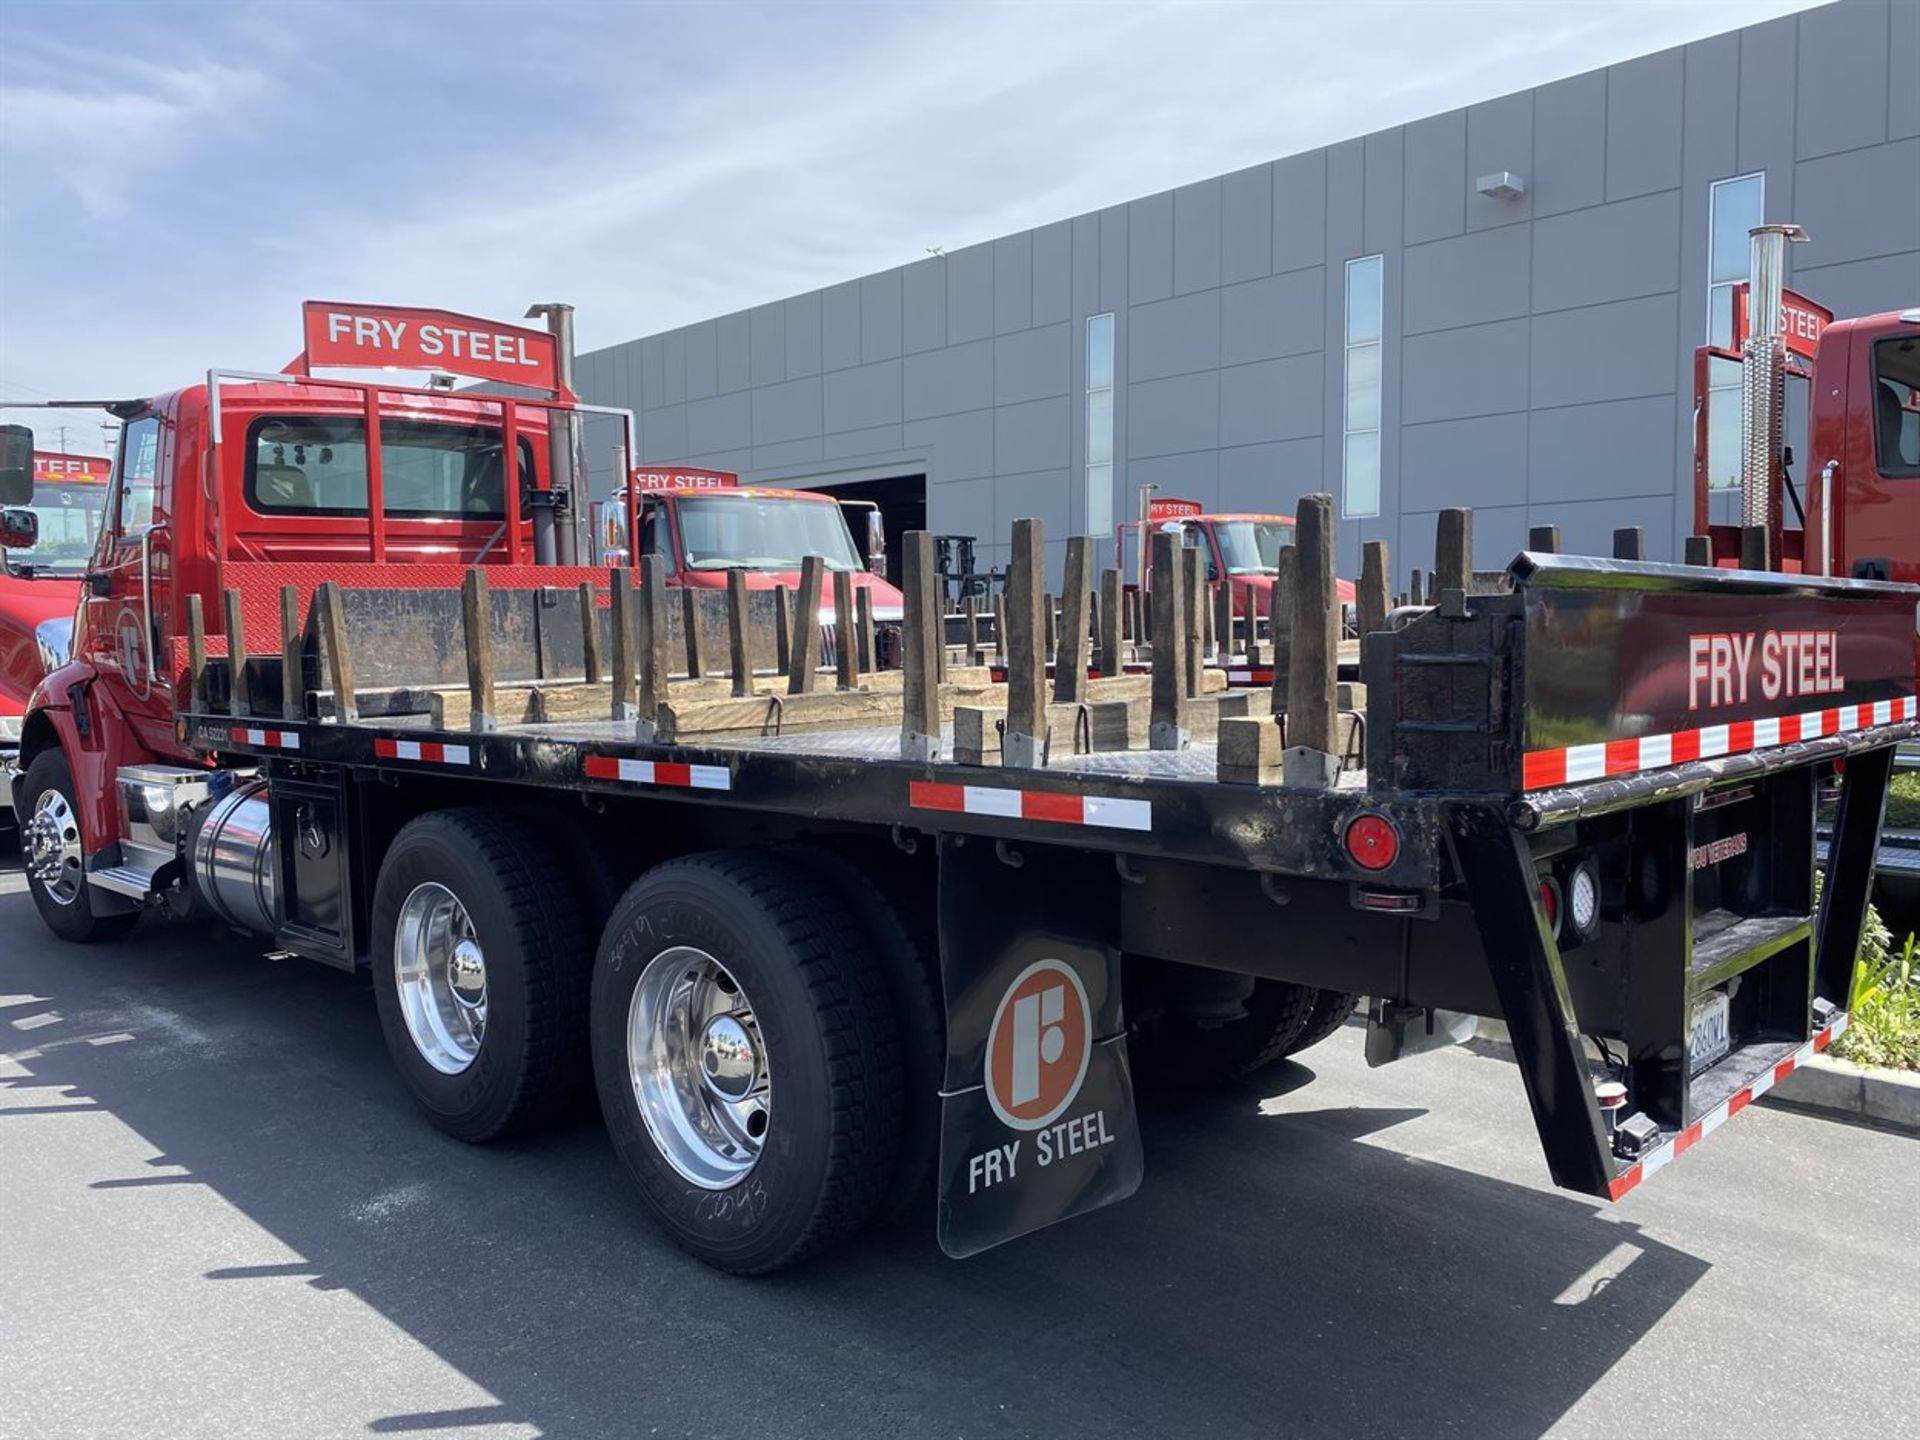 2016 INTERNATIONAL 18' Stake Bed Truck, VIN 1HTHXSNR4GH132503, 129,562 Miles at time of inspection - Image 4 of 21